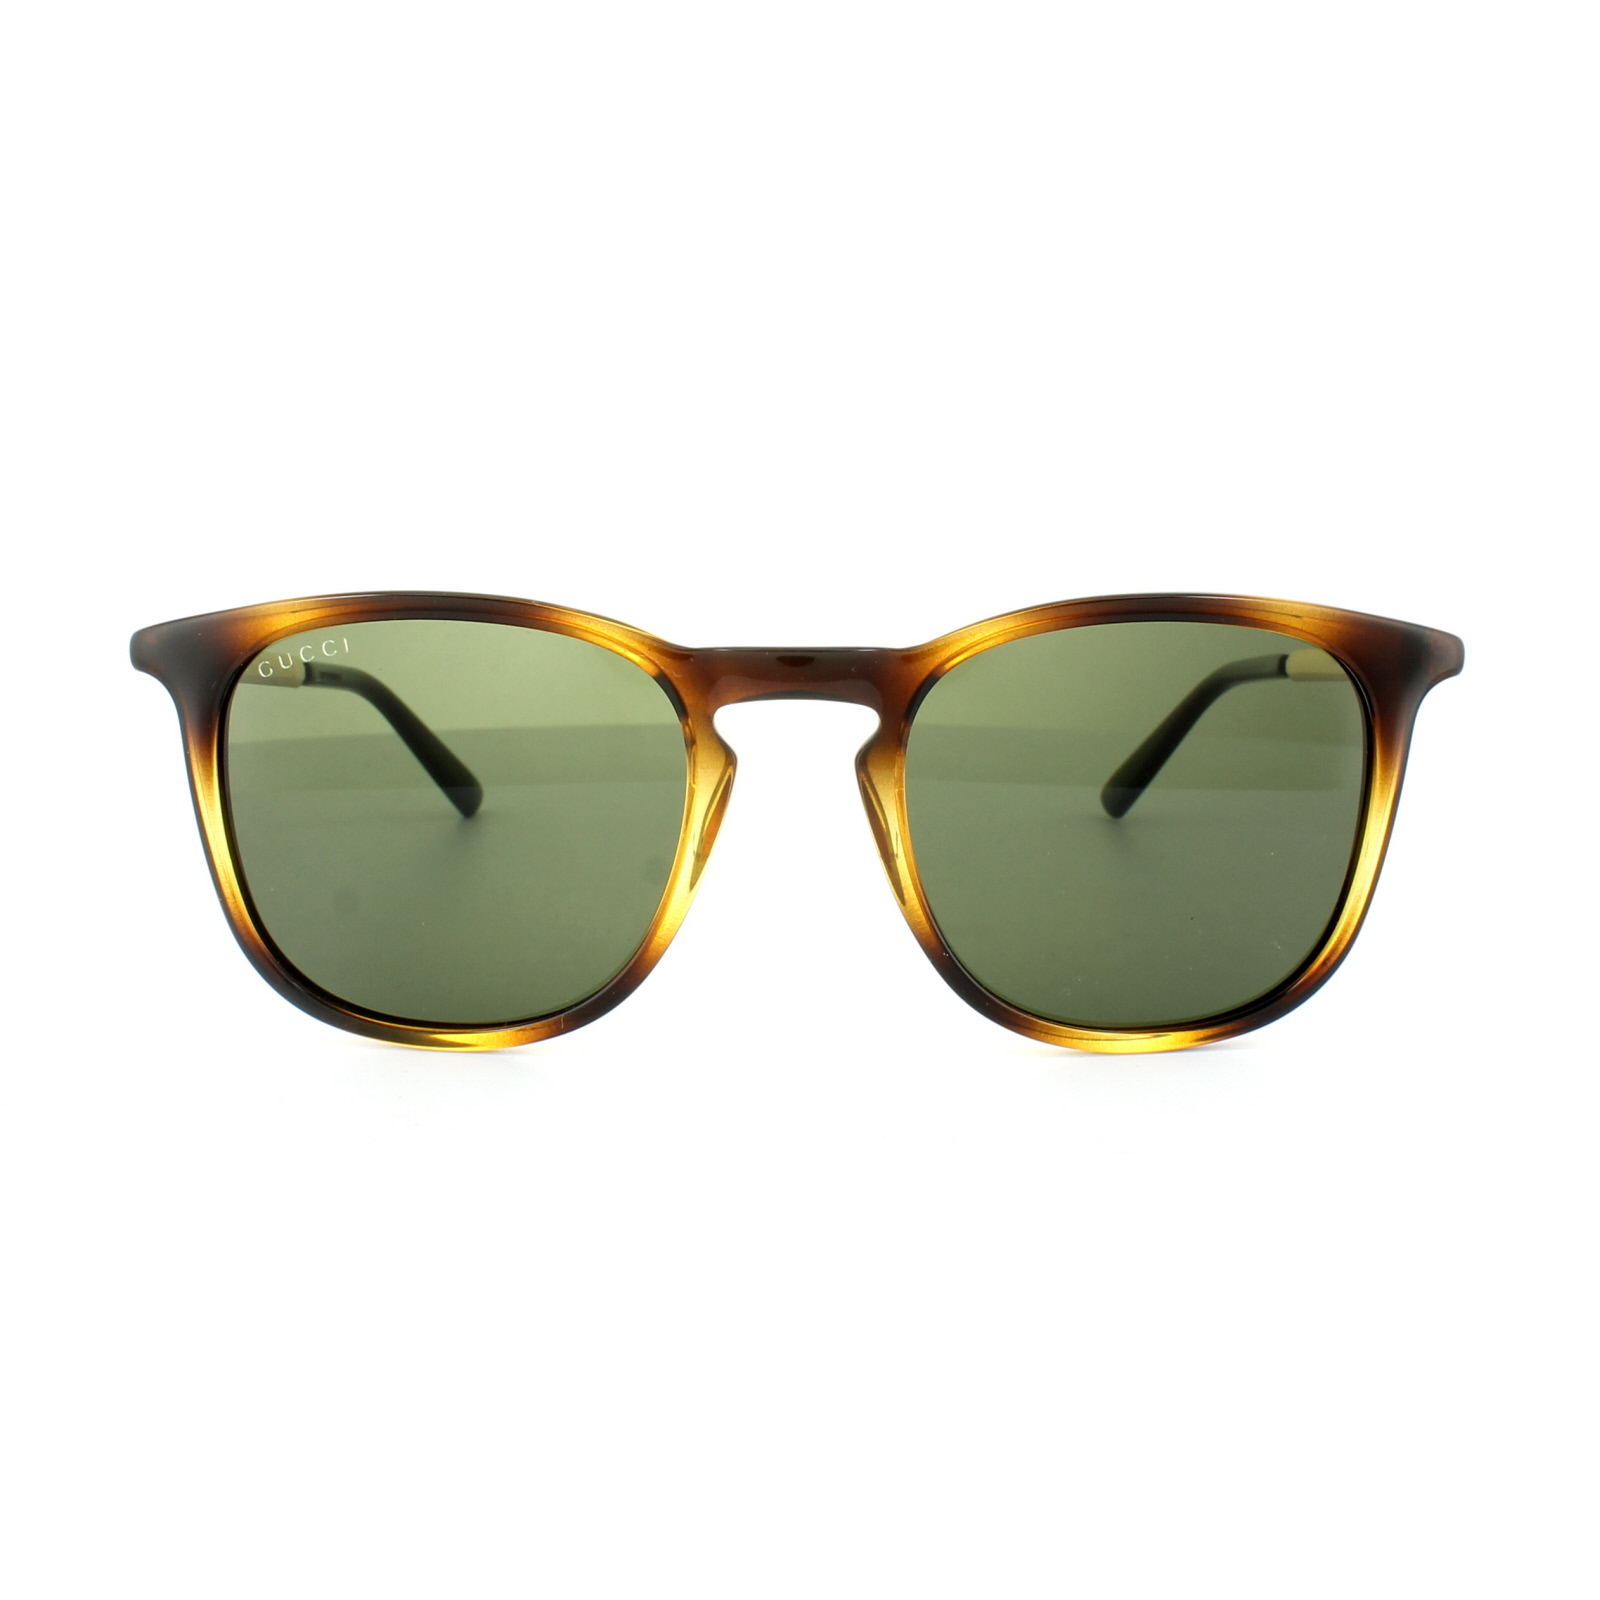 Gucci Sunglasses Green  gucci sunglasses 1130 qwr 1e havana gold green